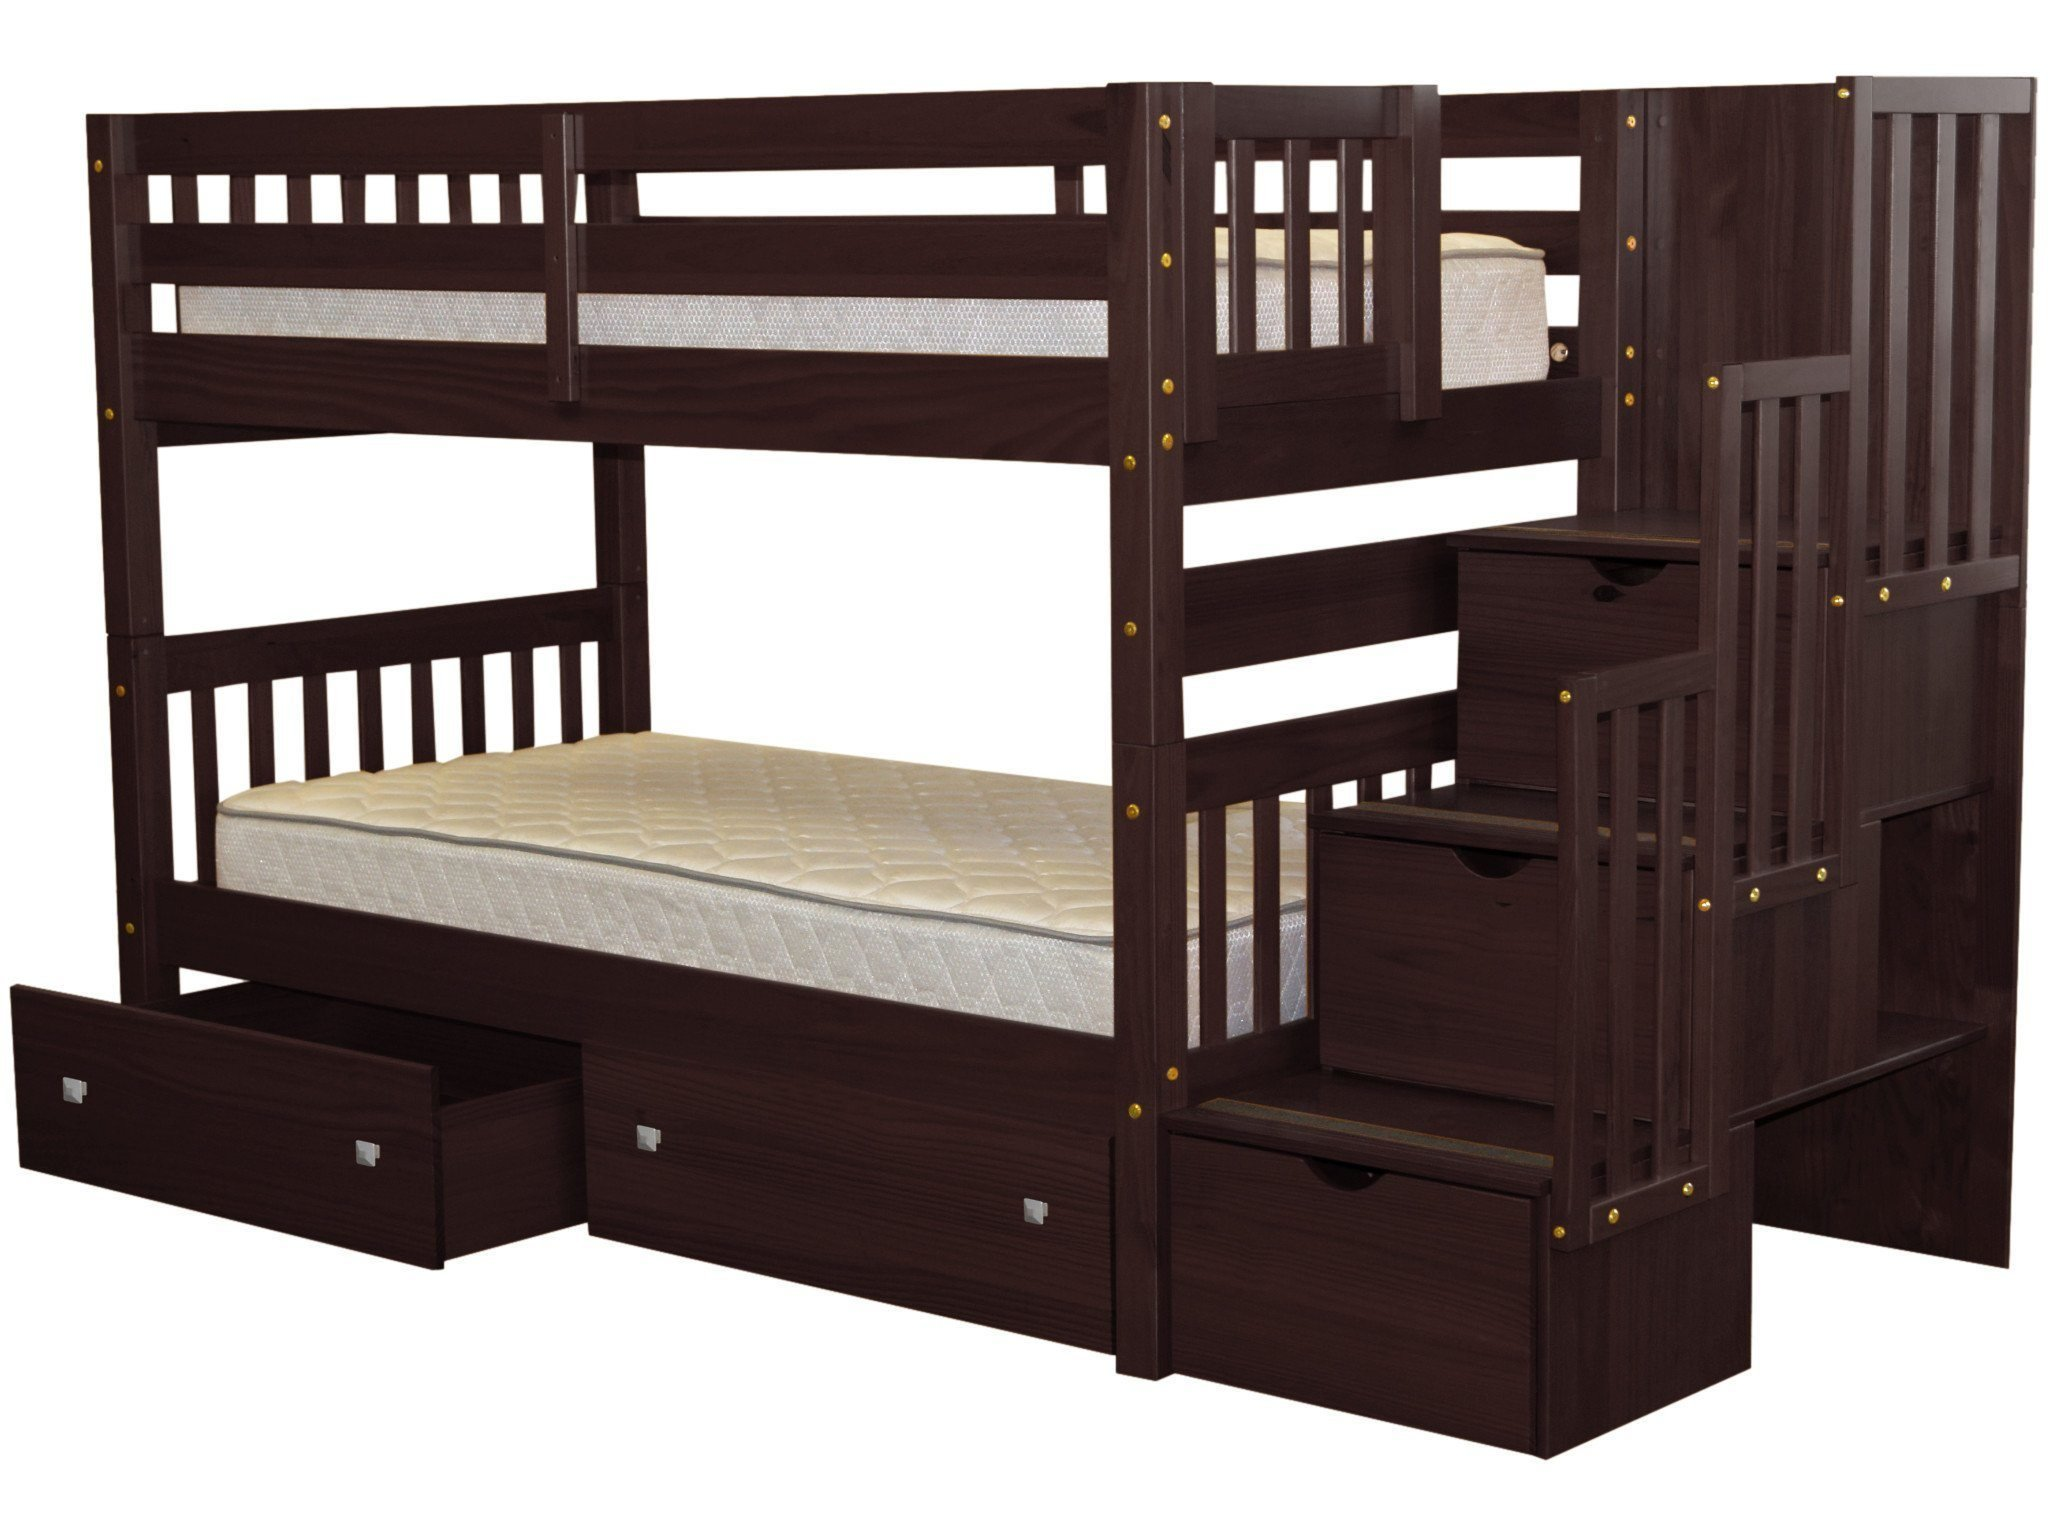 Bedz King Stairway Bunk Beds Twin over Twin with 3 Drawers in the Steps and 2 Under Bed Drawers, Cappuccino by Bedz King